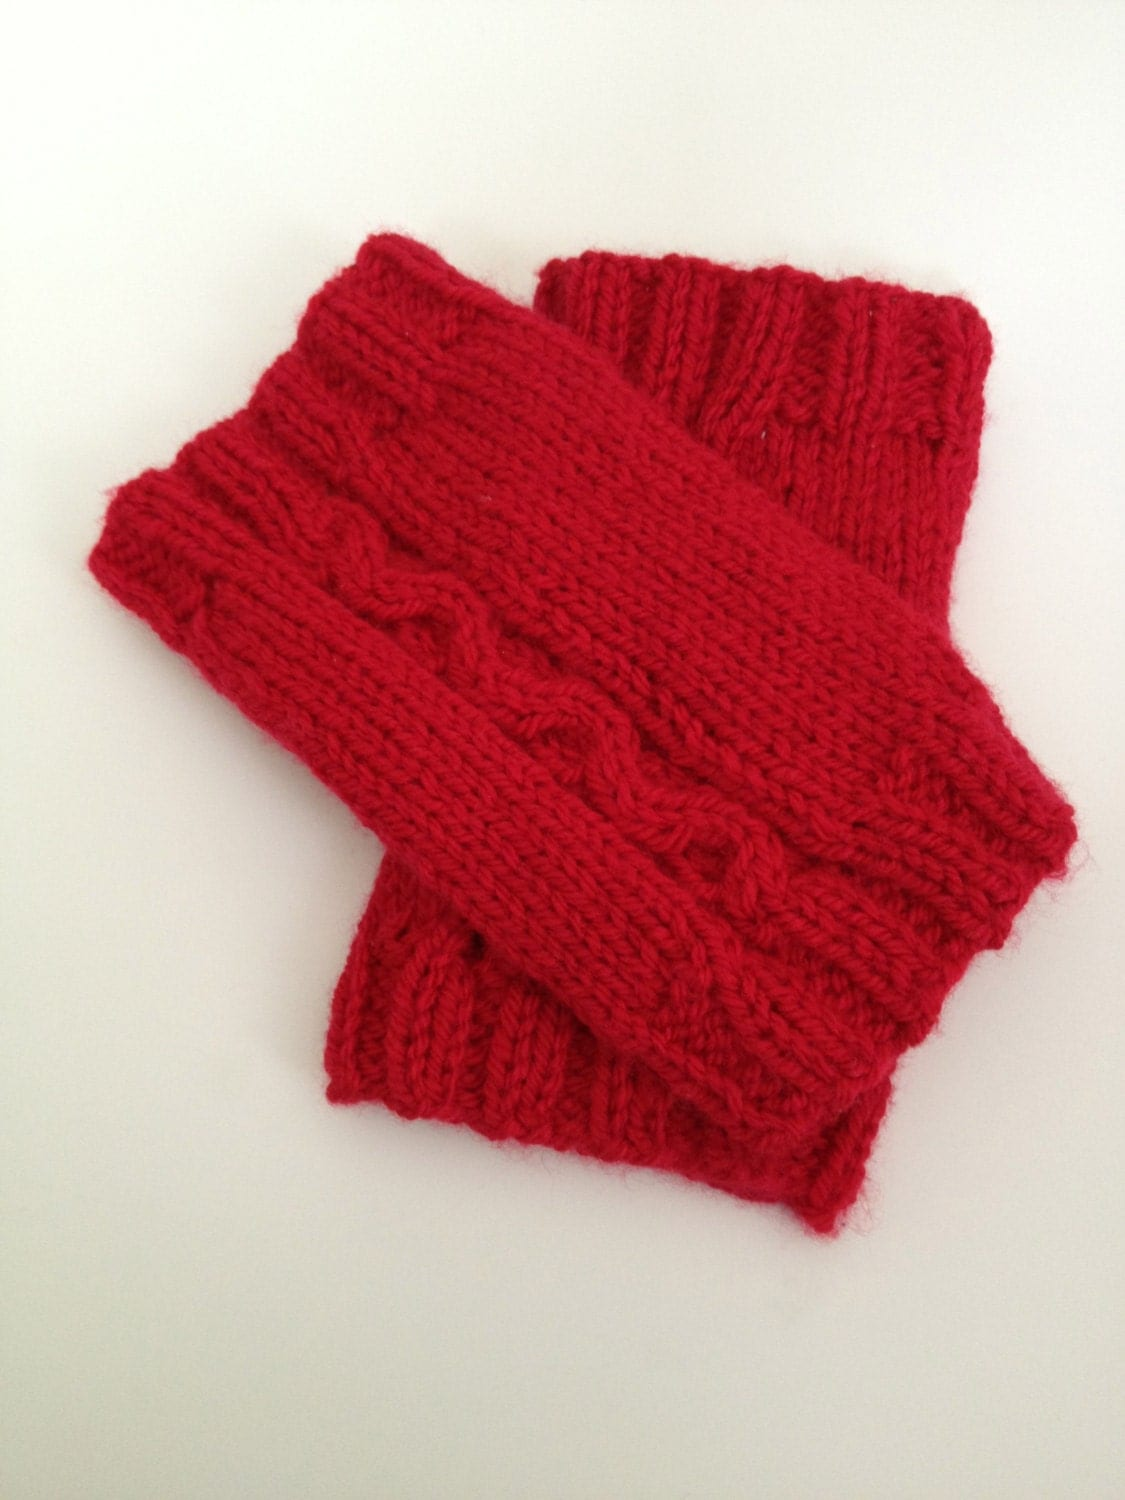 Cabled Leg Warmer Knitting Pattern, PDF, Sizes from 1 to 4yrs, instant downlo...